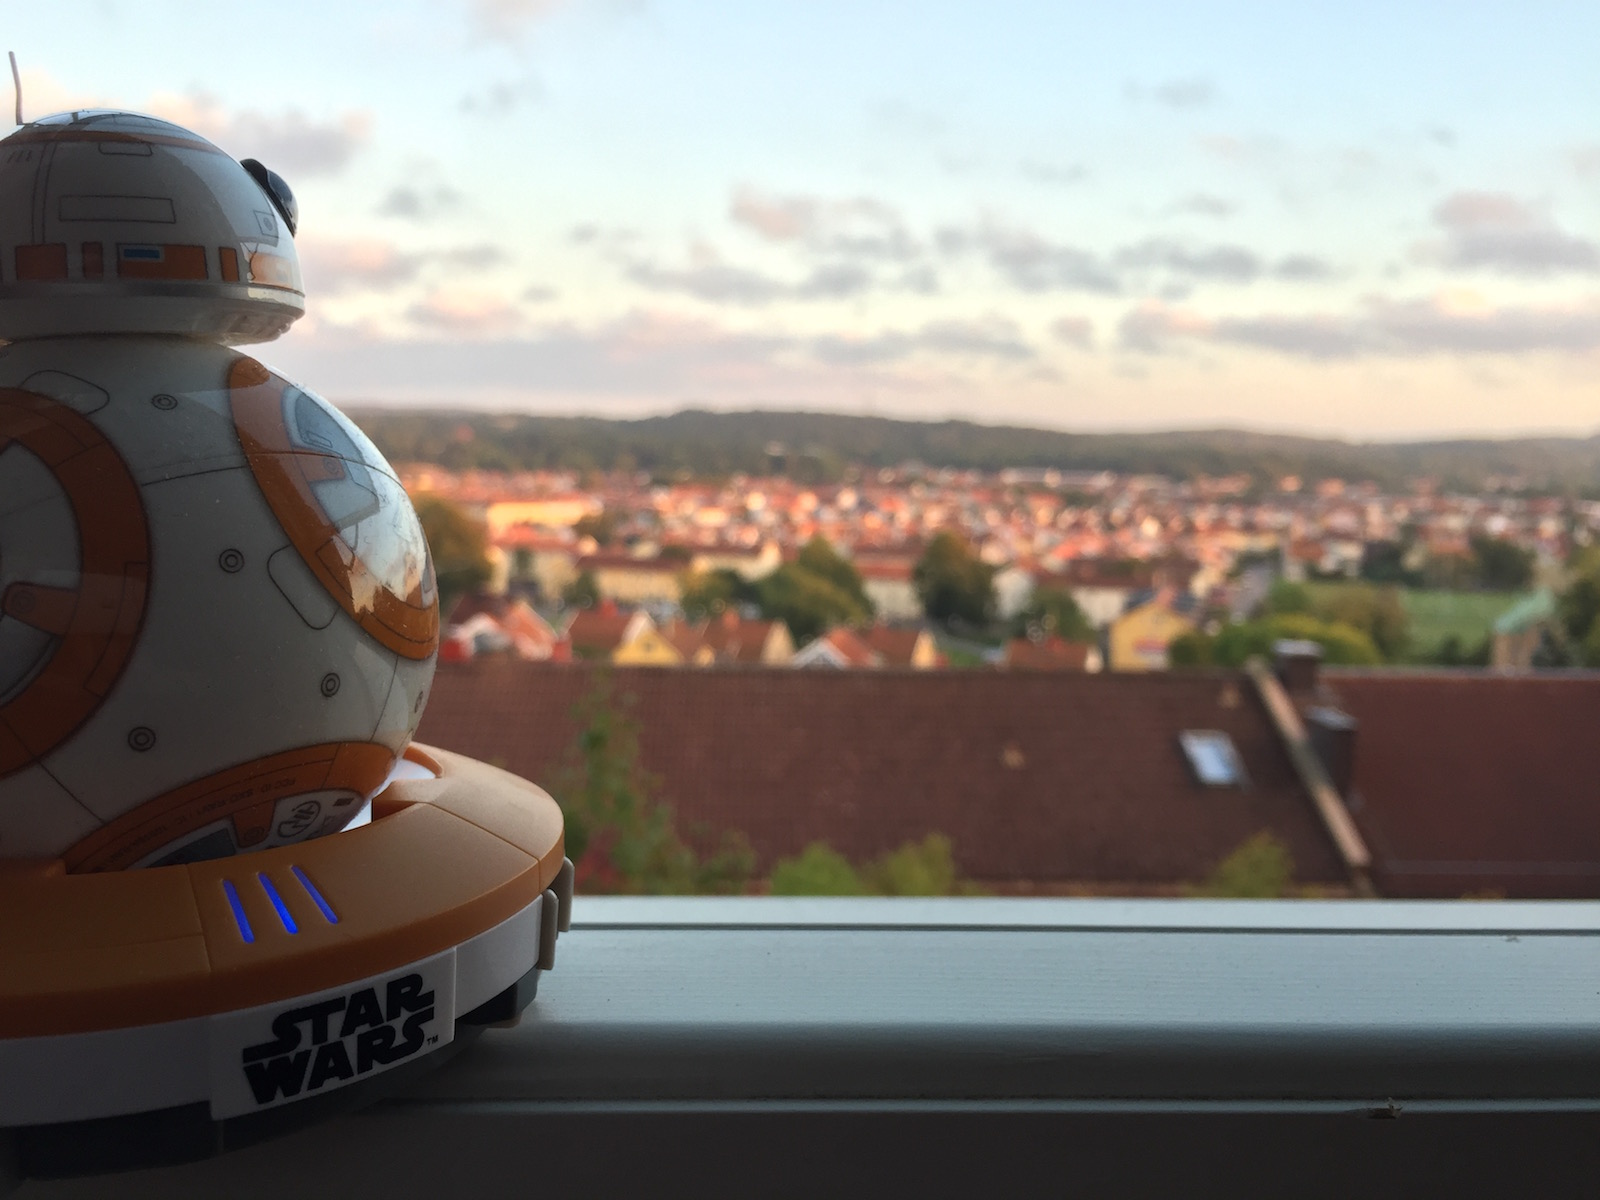 BB-8 in its cradle checking out the view